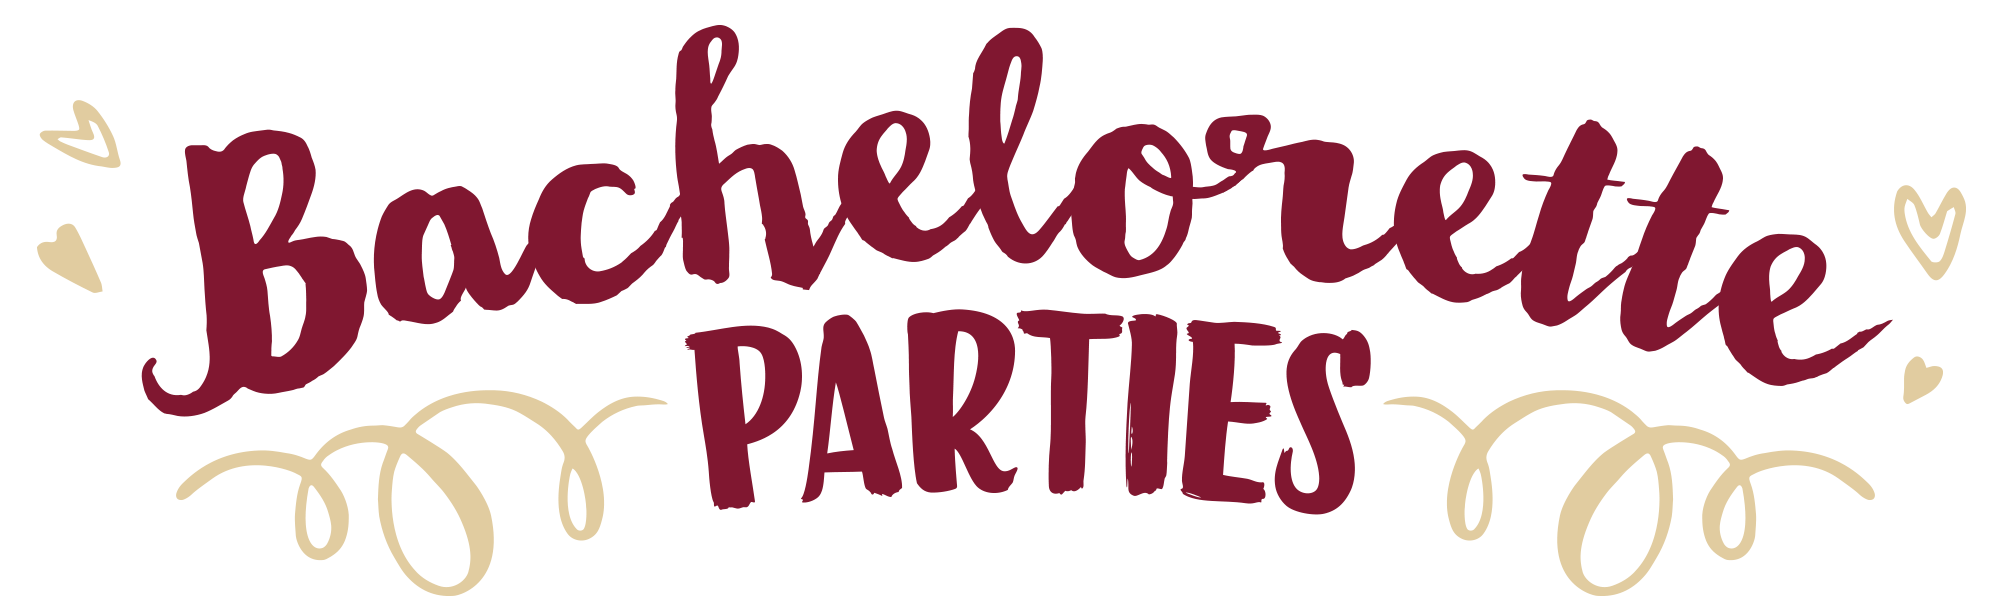 Bachelorette party png. Paint at painting with